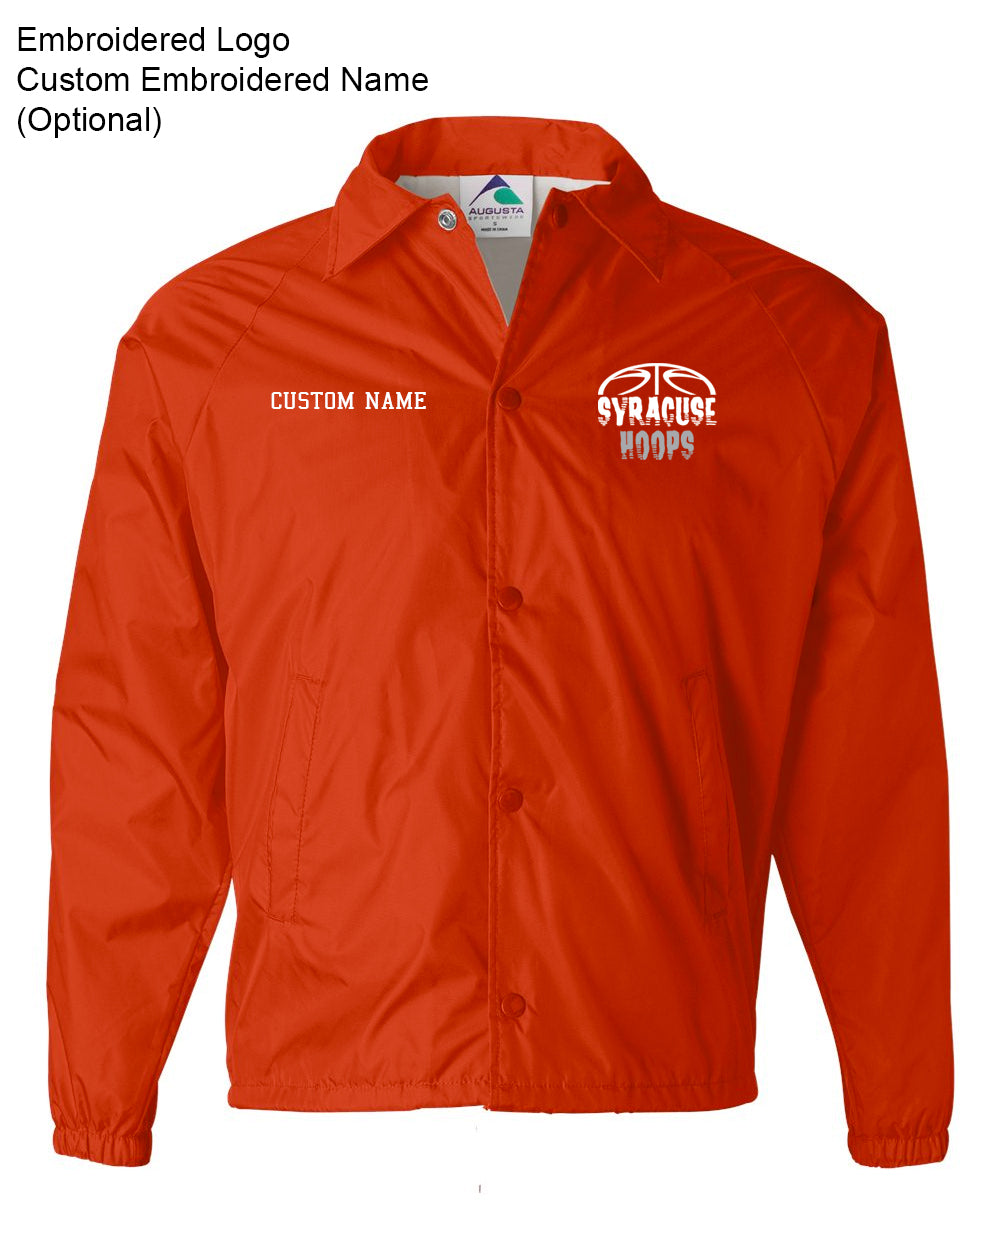 Hoops Orange Coaches Jacket